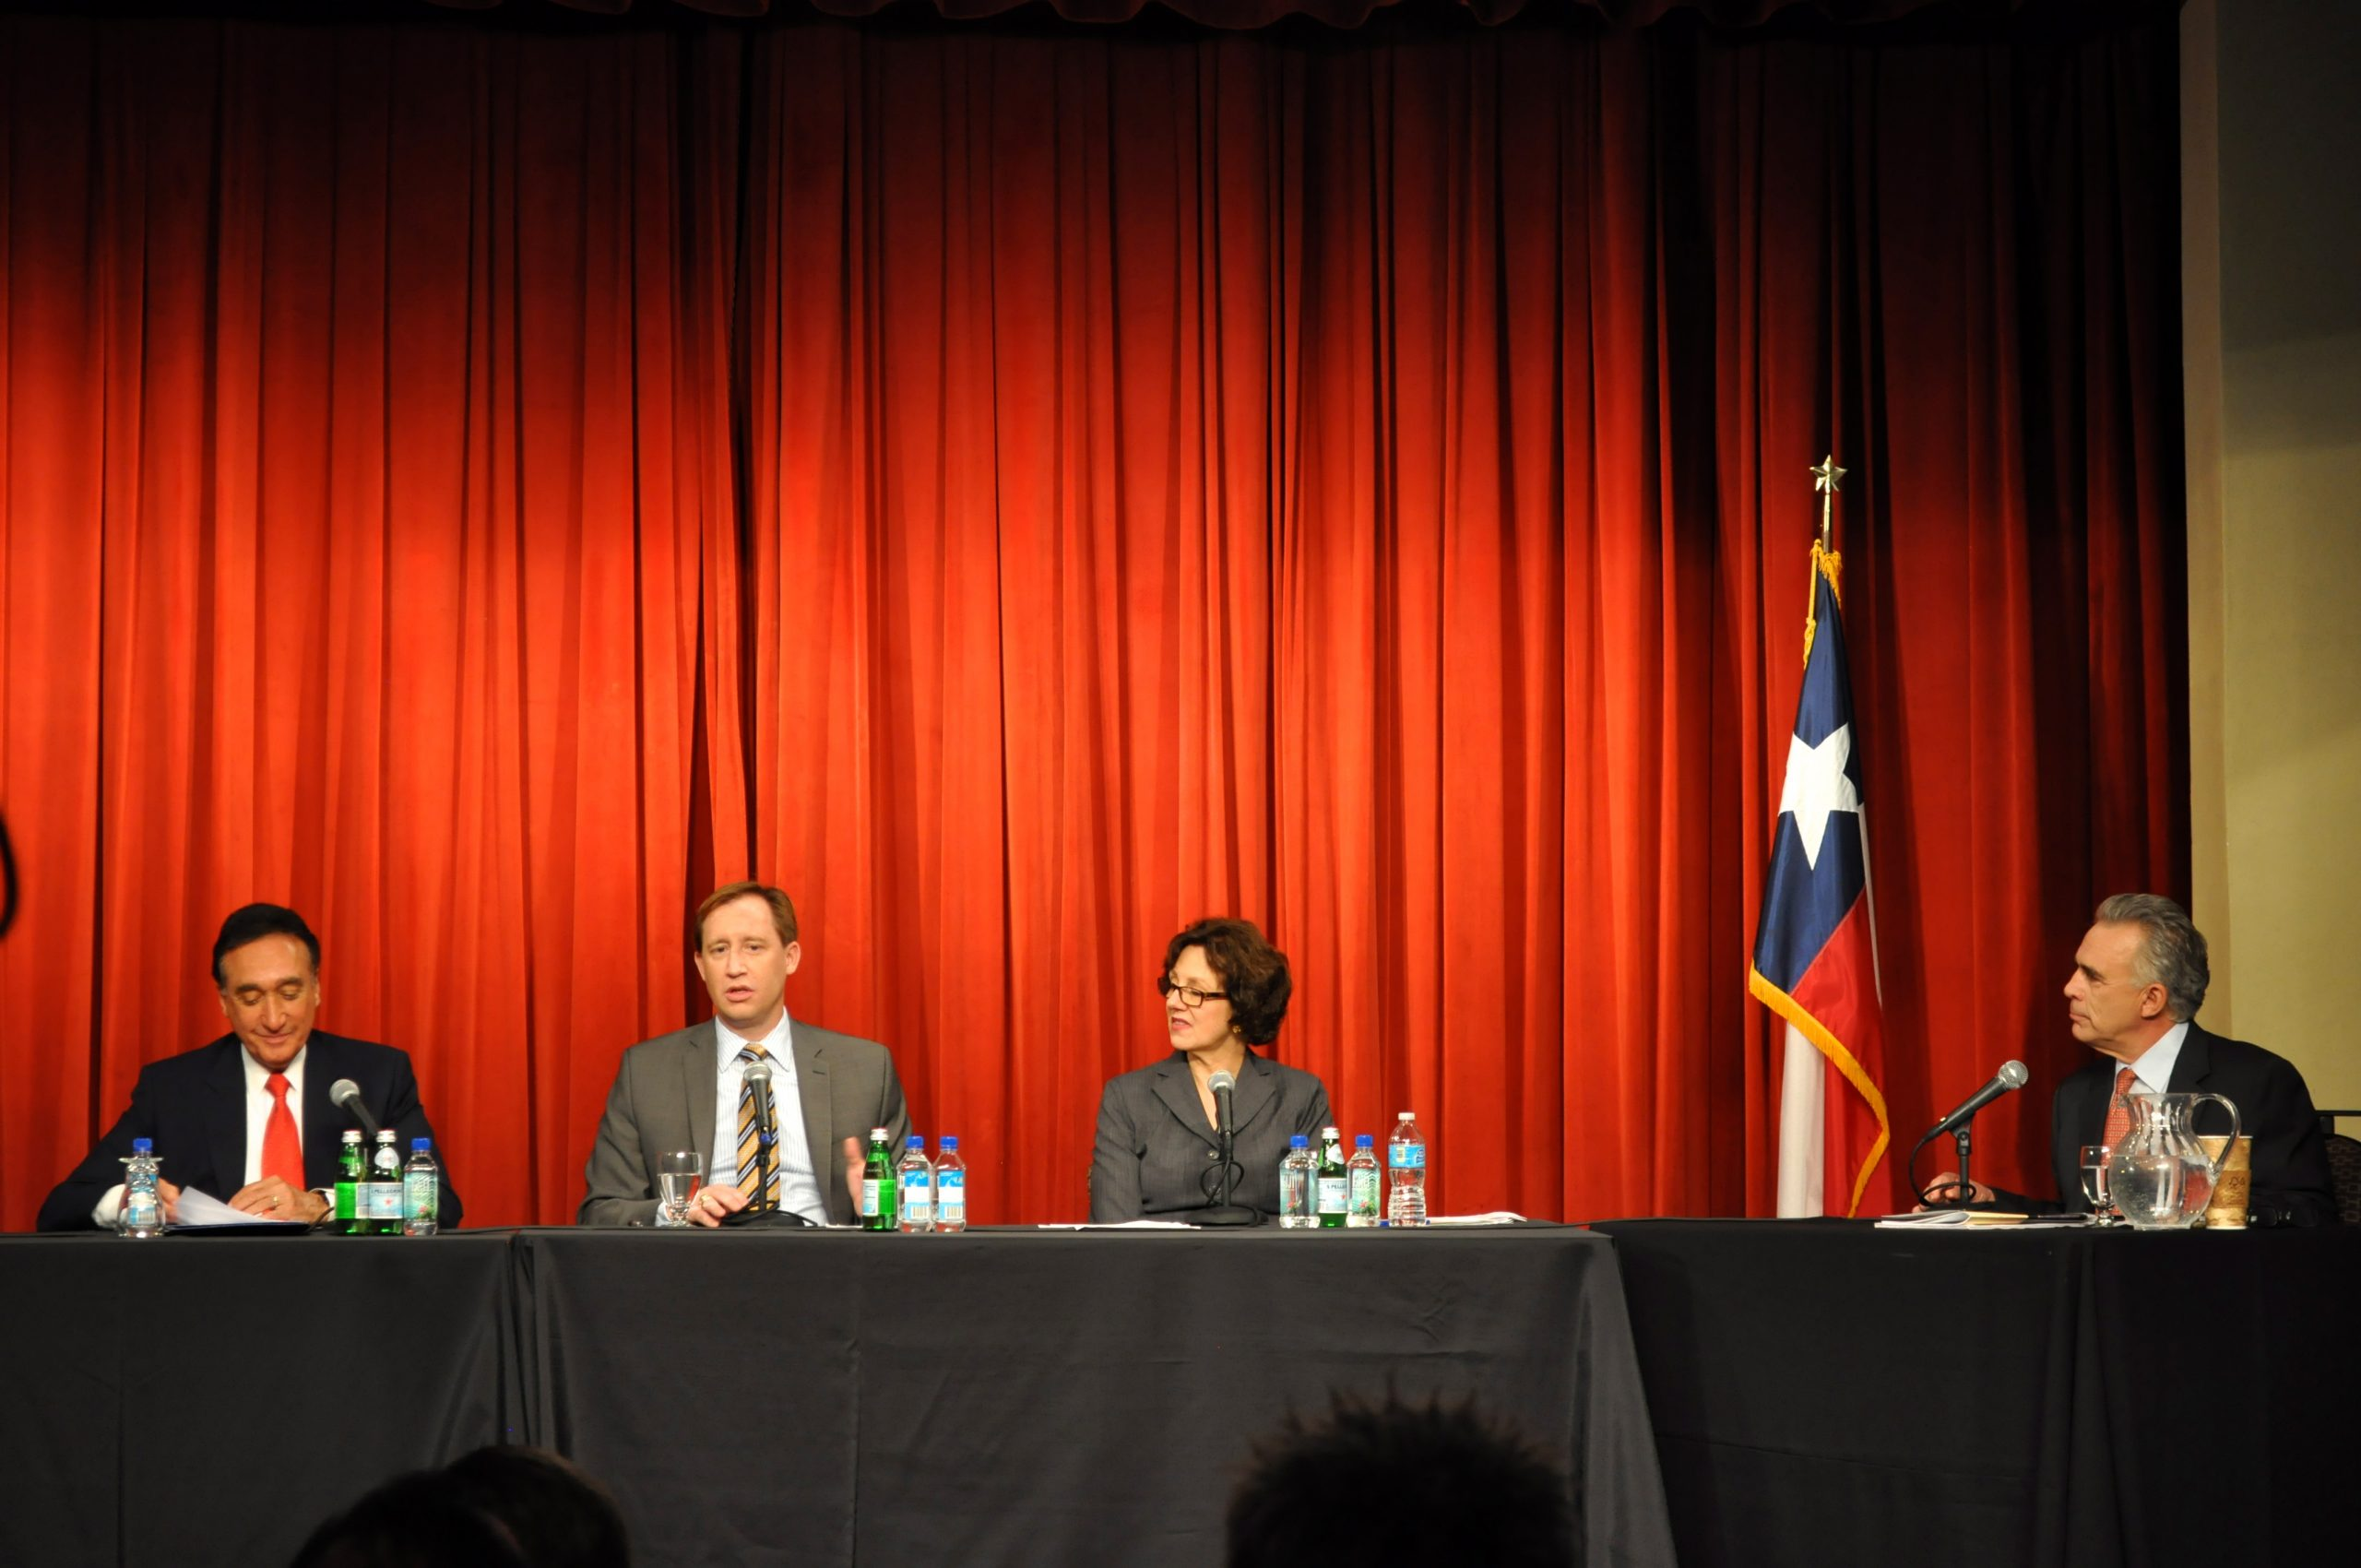 Eagle Ford Shale Forum II: (from left) Henry Cisneros, chairman of the San Antonio Economic Development Foundation; Lance Robinson, vice president of Eagle Ford operations for Marathon Oil Corp; Susan Combs, Texas Comptroller; Robert Rivard, moderator, director of The Rivard Report. Photo by Iris Dimmick.